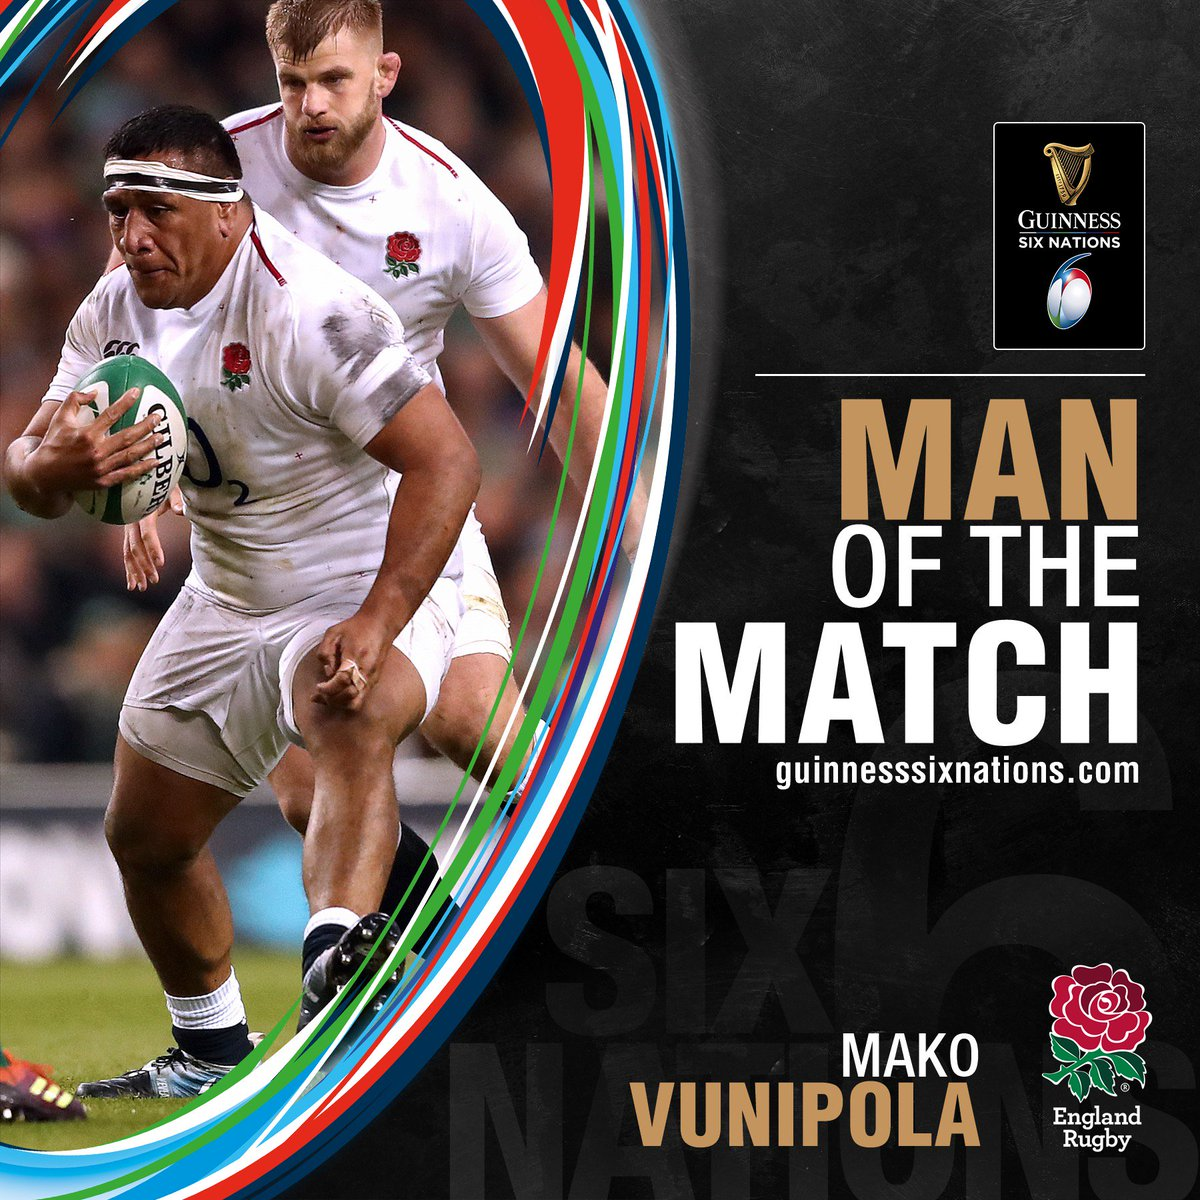 1e8fe9b59196e As part of a powerful @EnglandRugby performance, Mako Vunipola is named the  #GuinnessSixNations Man of the Match #IREvENG pic.twitter.com/GsoGUKeLws